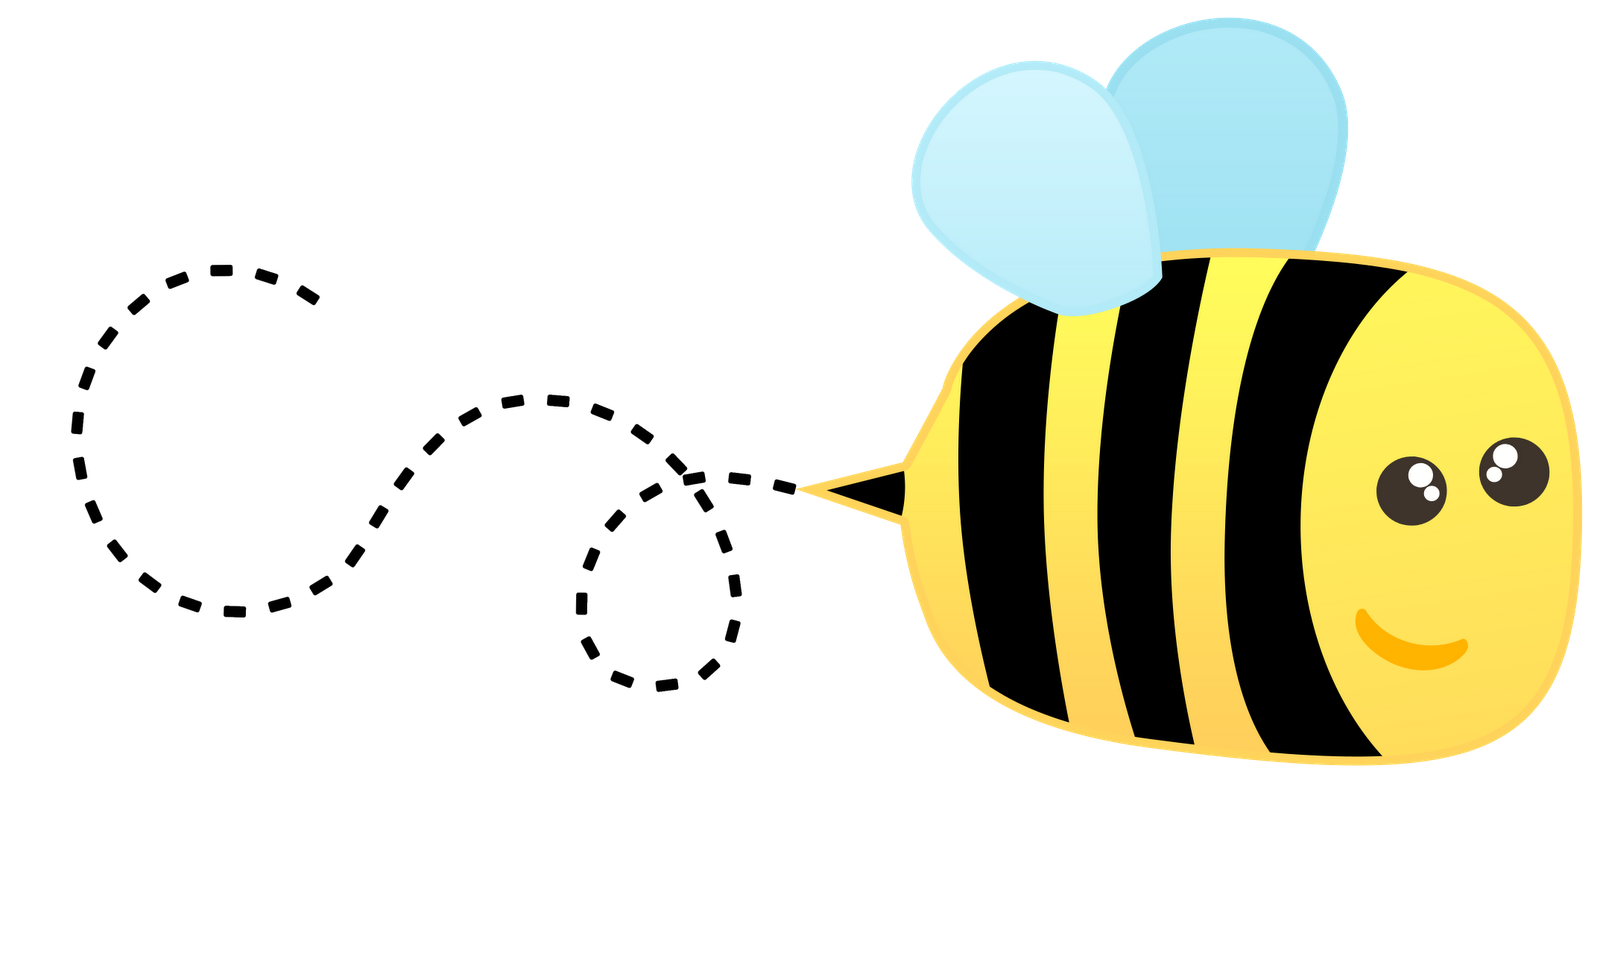 Night clipart cute. Bee images free download